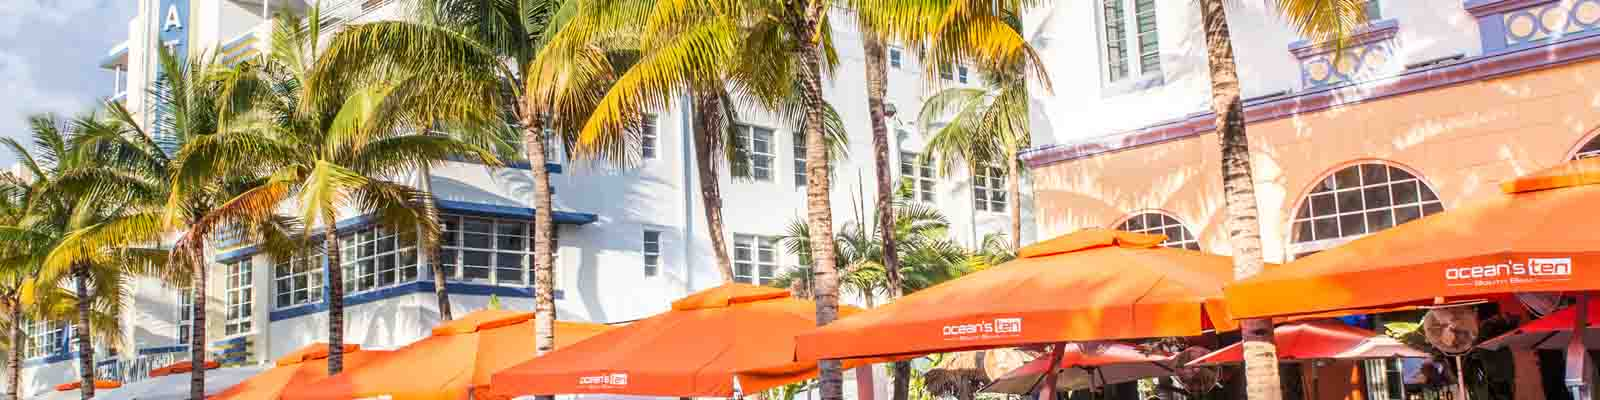 This is an image of Ocean's Ten in Miami. ASTA-USA offers professional translation services in this city.